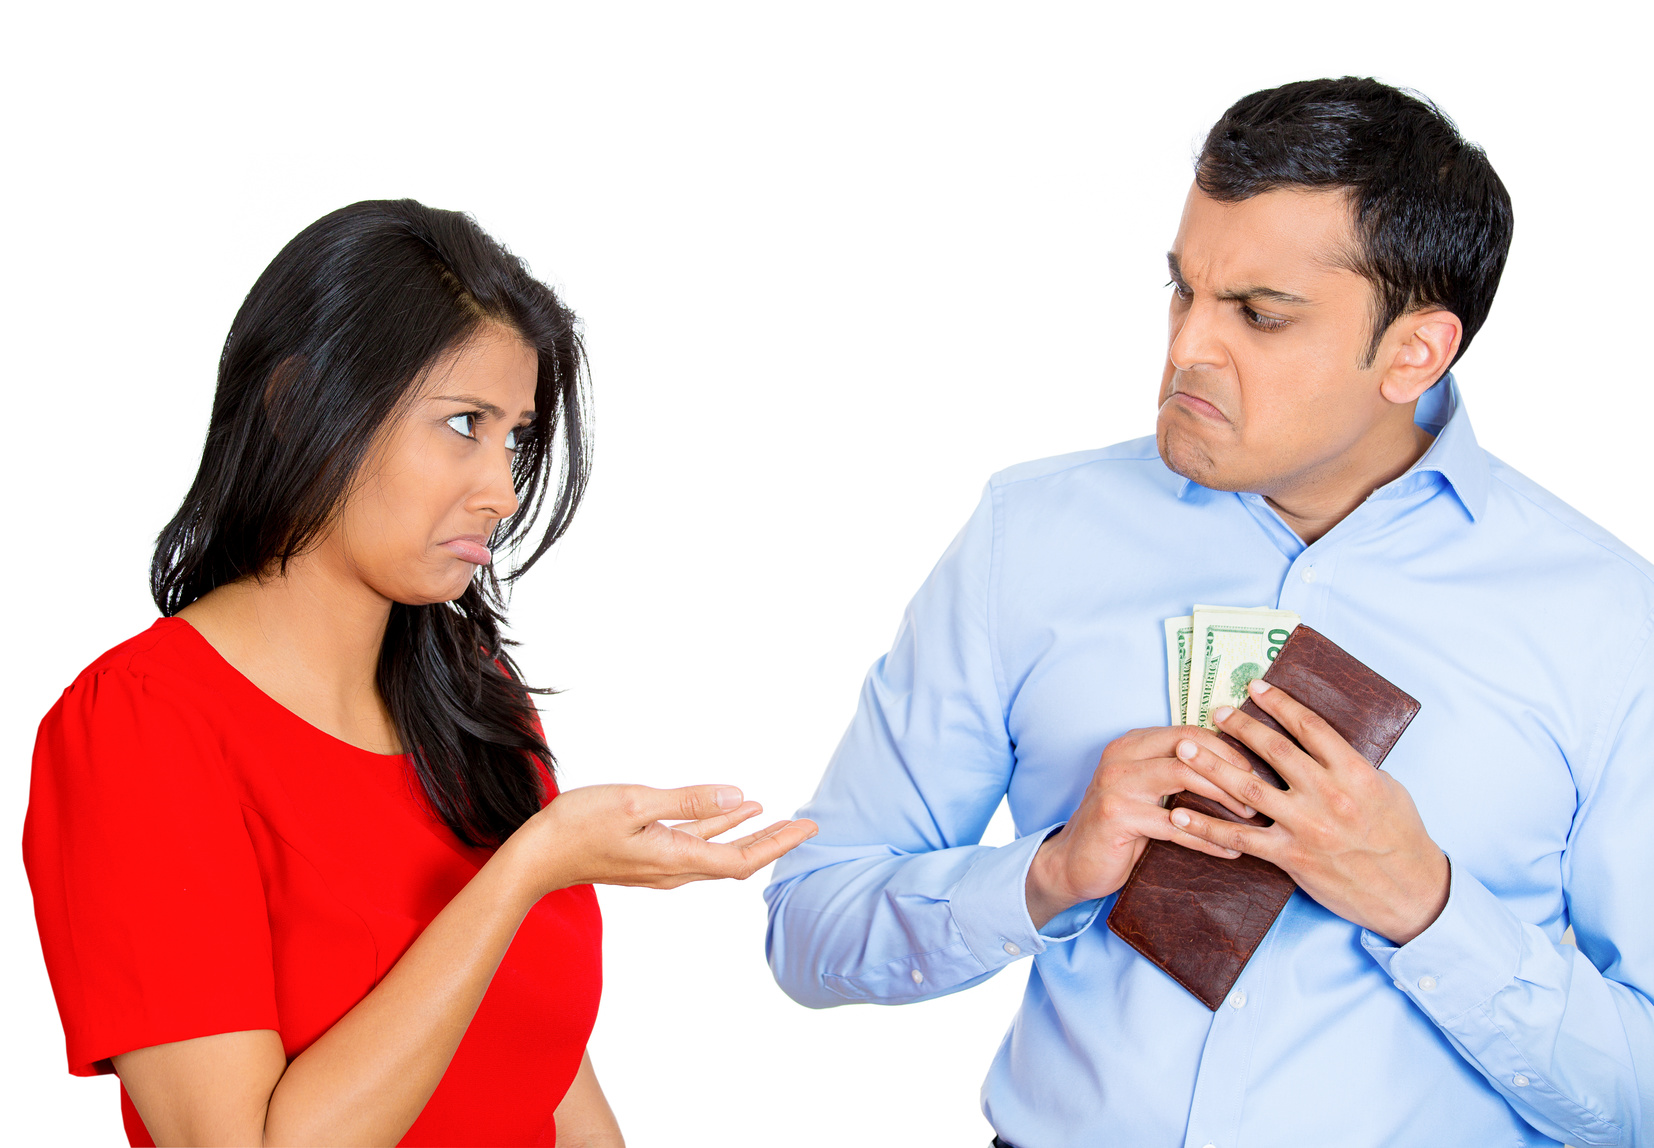 Woman asking for money from angry man with wallet